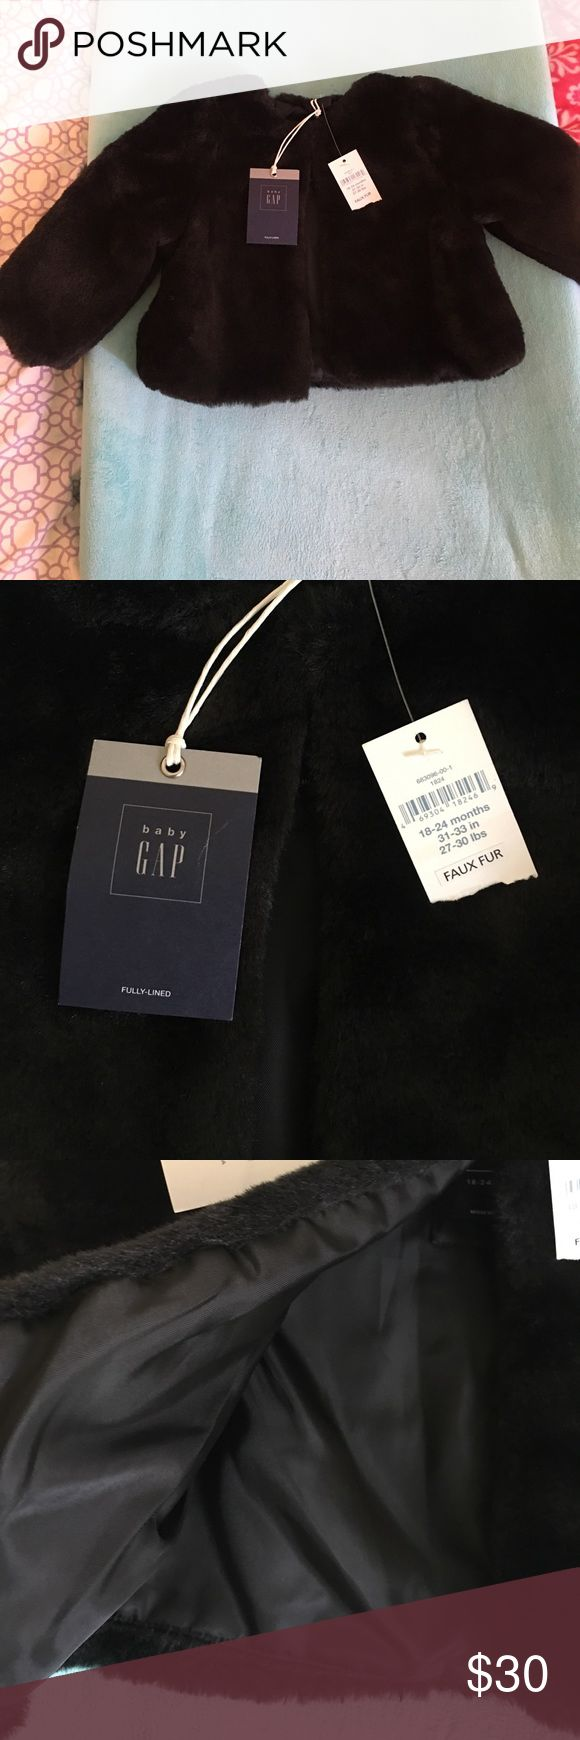 NWT Baby Gap faux fur shrug NWT, Gorgeous, brand new faux fur shrug from Baby Gap. Fully lined and perfect for the Holidays GAP Jackets & Coats Capes